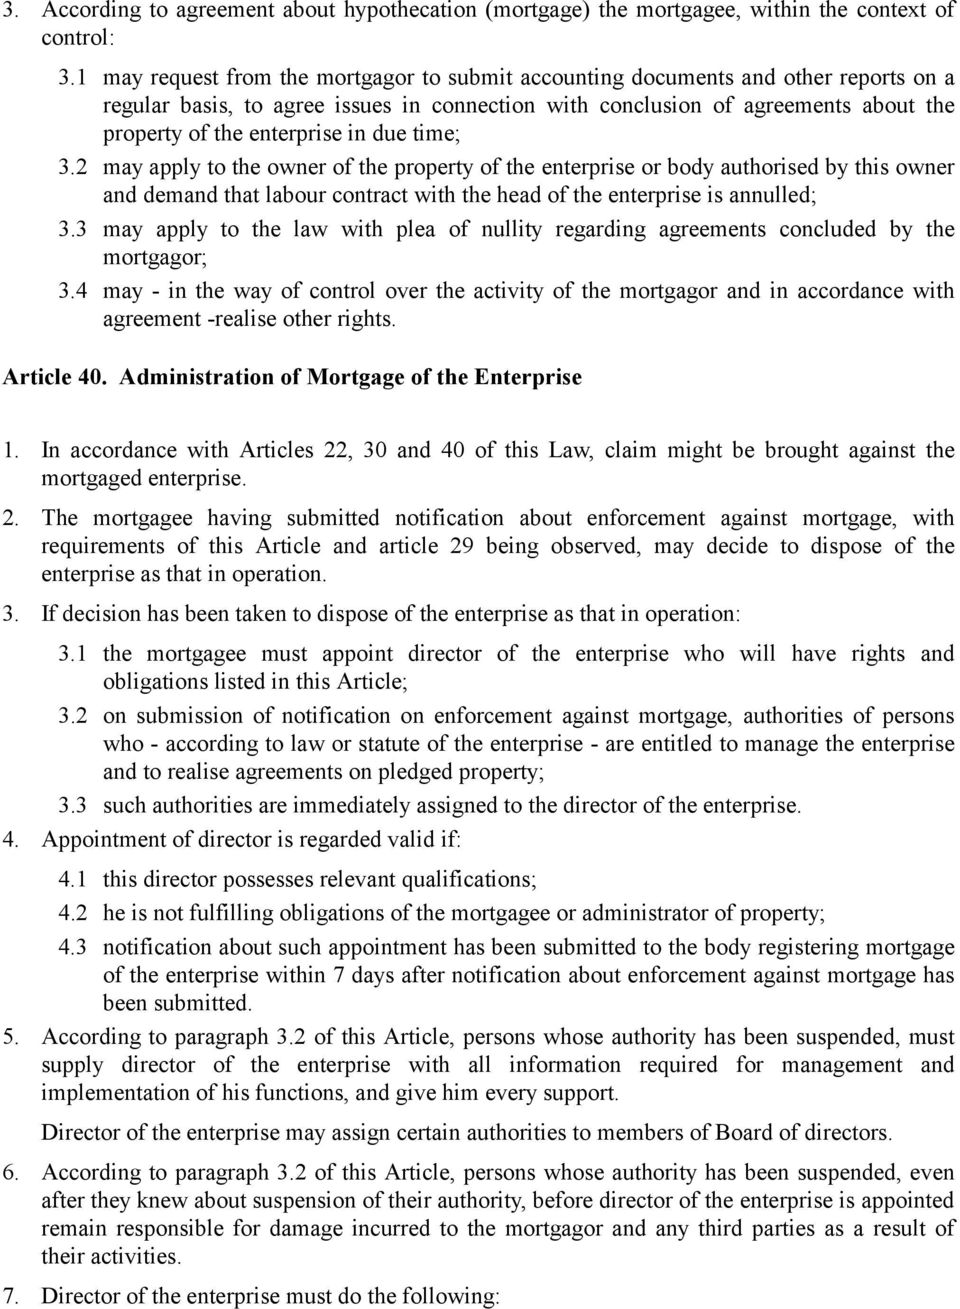 in due time; 3.2 may apply to the owner of the property of the enterprise or body authorised by this owner and demand that labour contract with the head of the enterprise is annulled; 3.